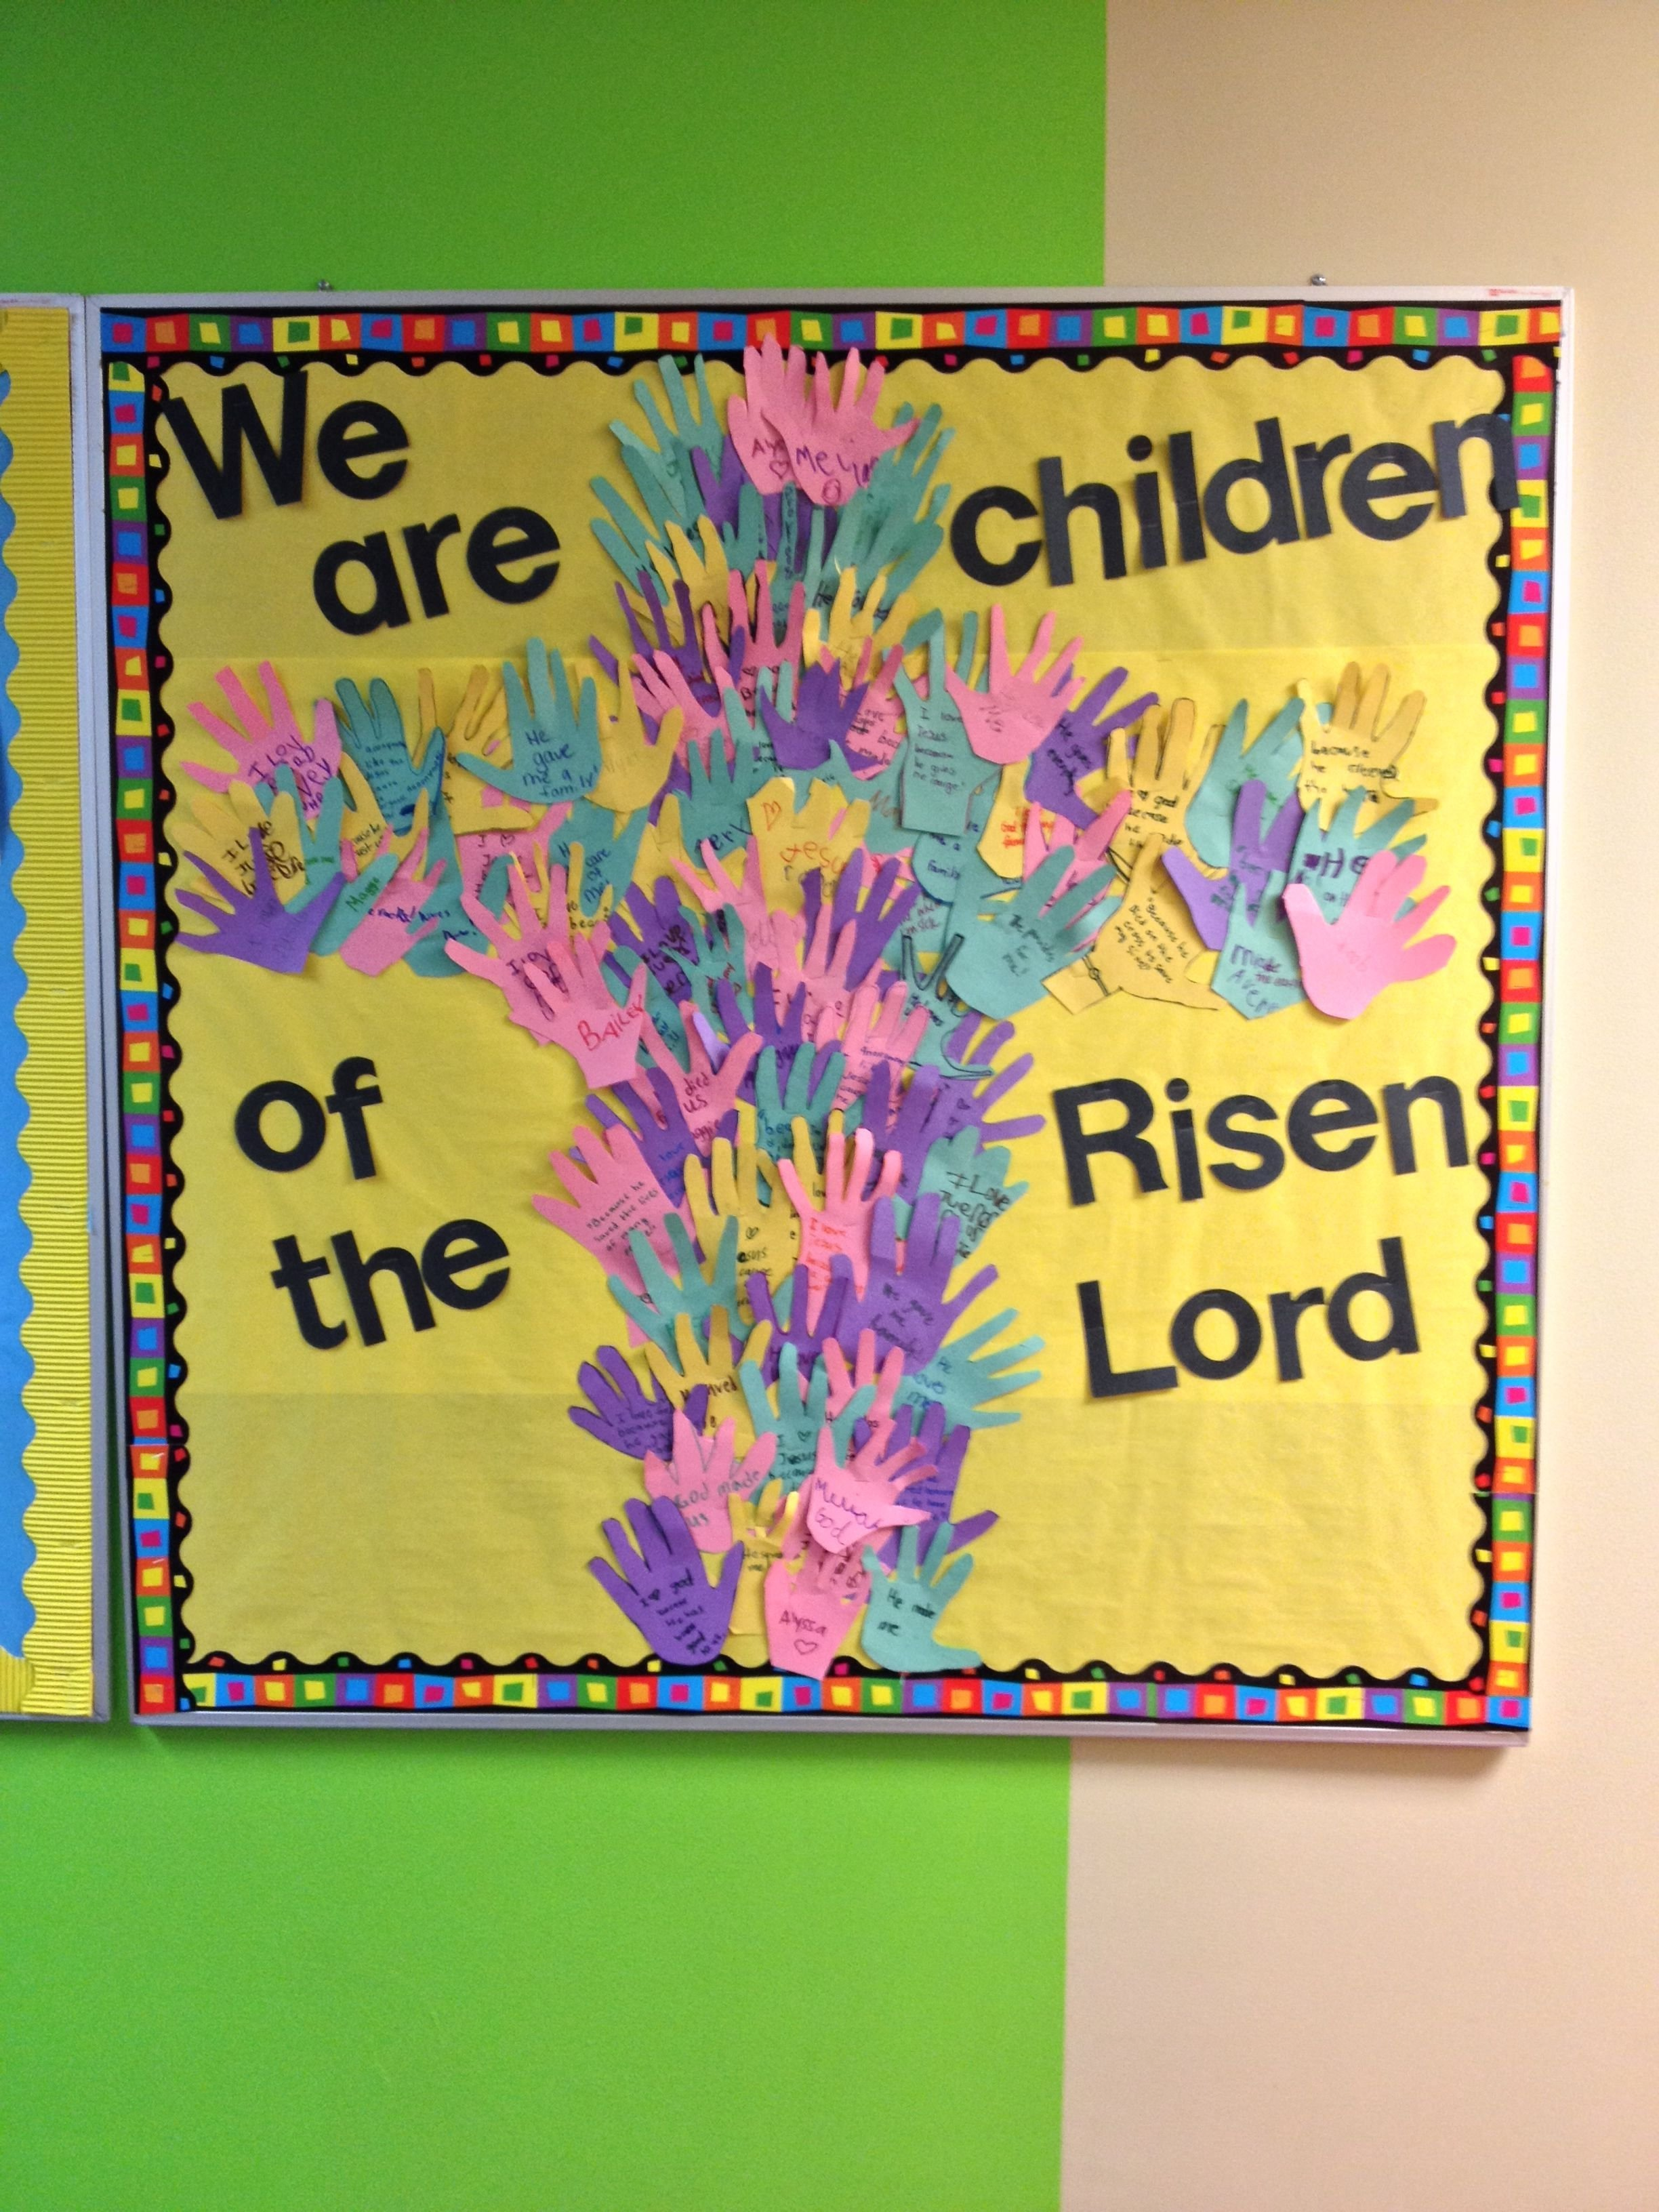 10 Most Recommended Easter Bulletin Board Ideas For Church easter bulletin board kids handprints in shape of the cross on 2020